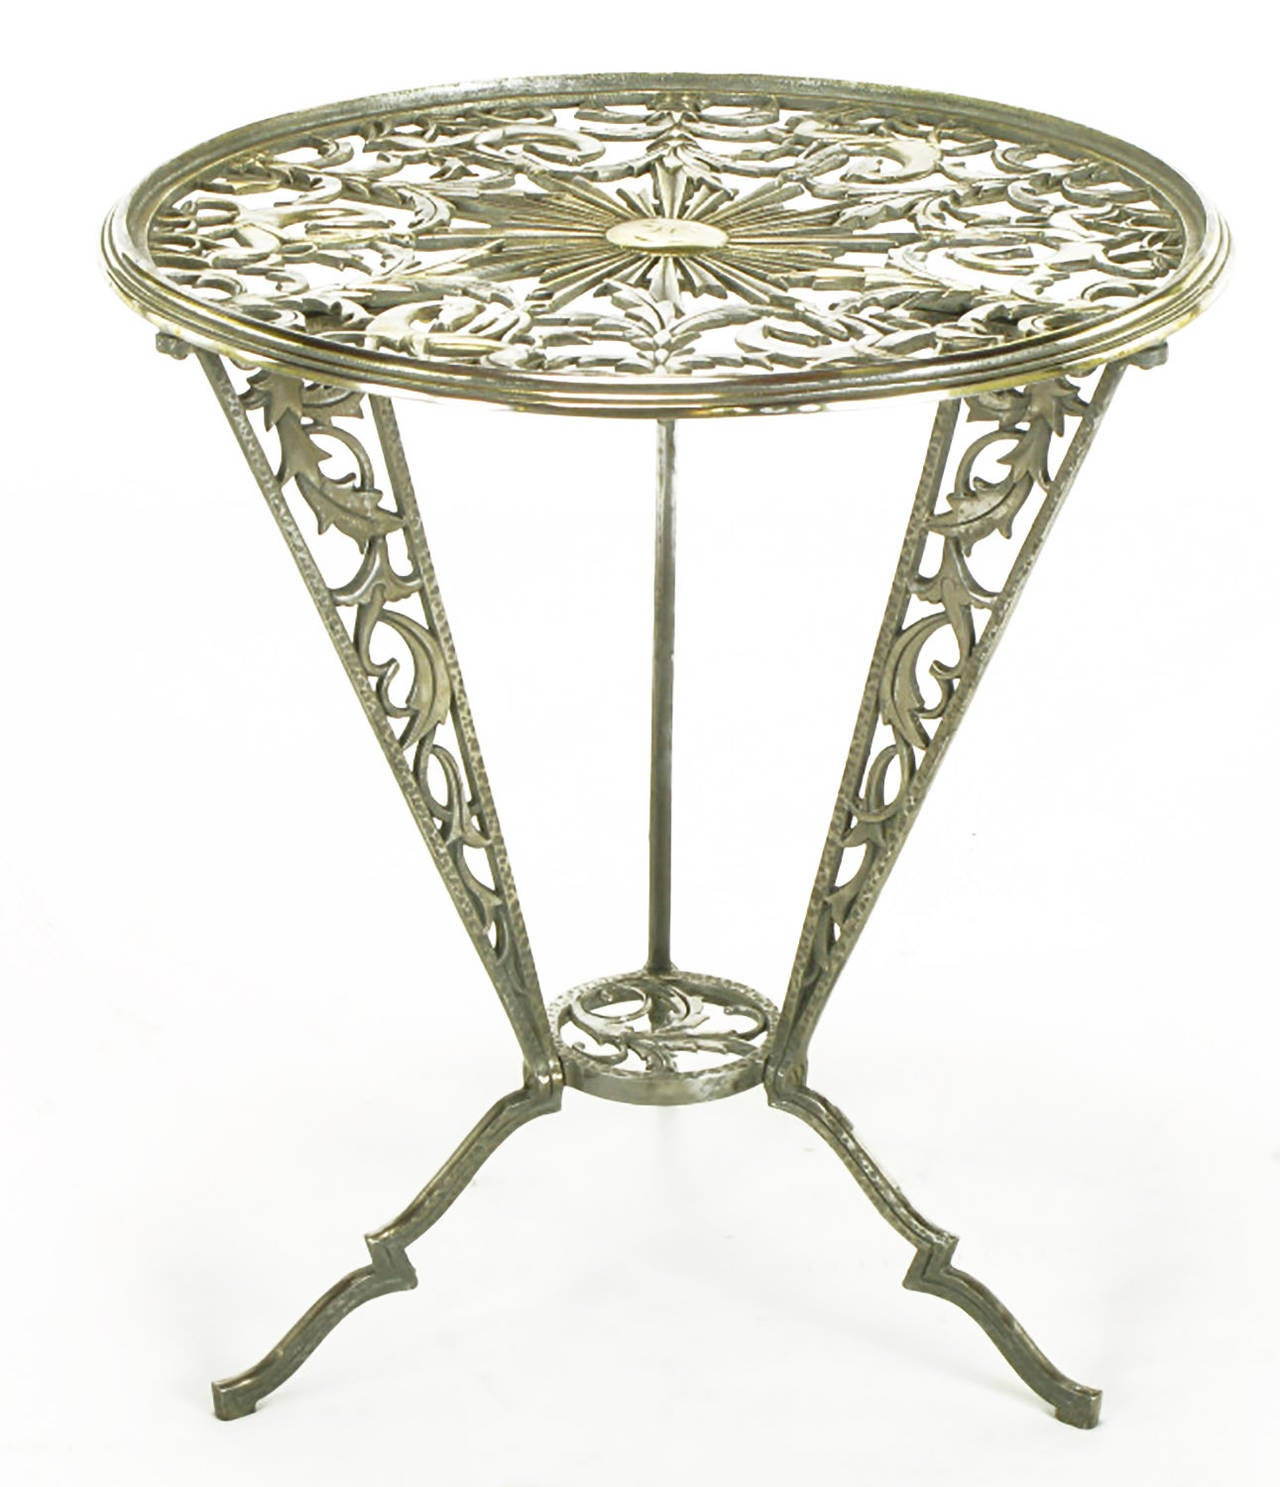 American Rena Rosenthal Cast Metal Art Deco Table For Sale